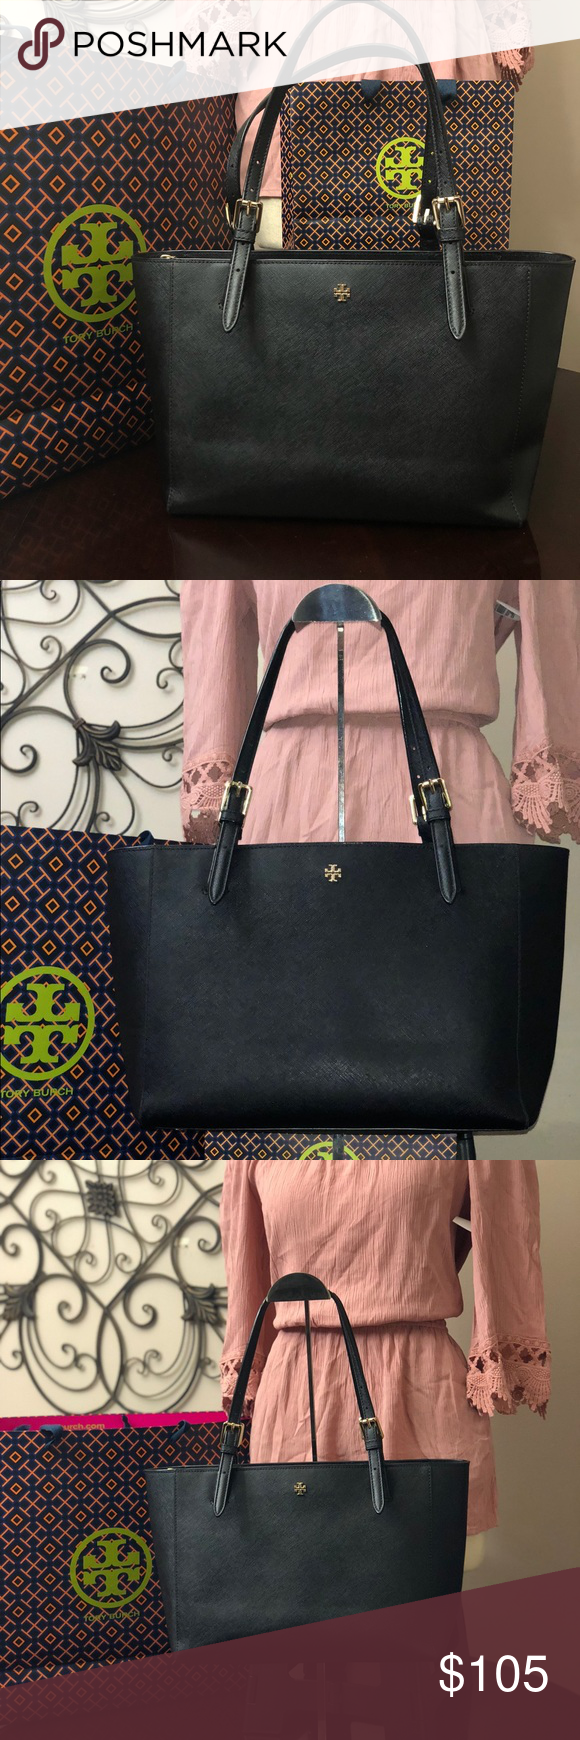 acaab74de945 Authentic Tory Burch York buckle small Tote Great pre-owned condition.  Clean inside and